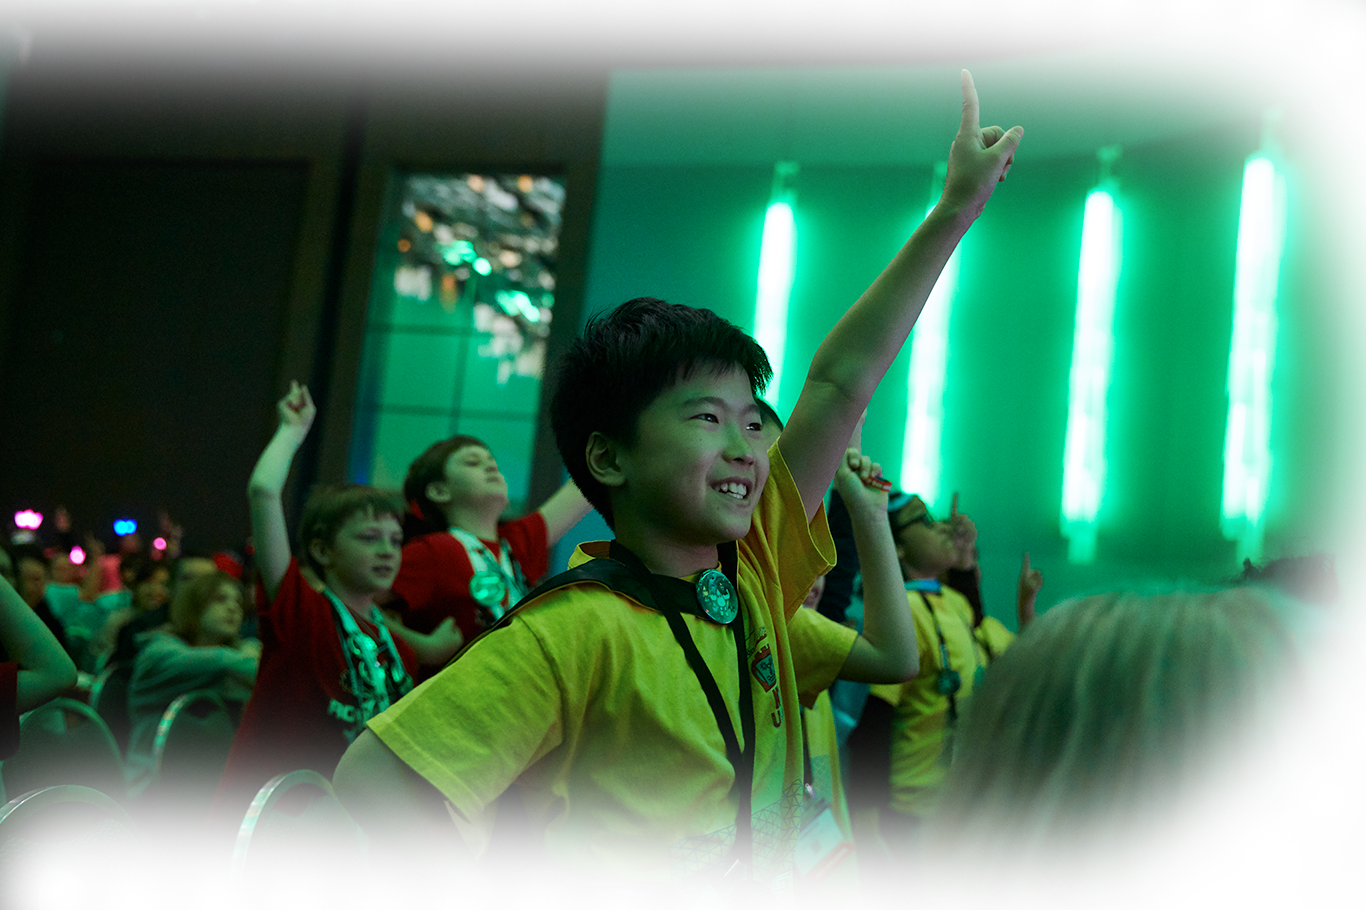 Young kid cheering at FIRST LEGO League event.